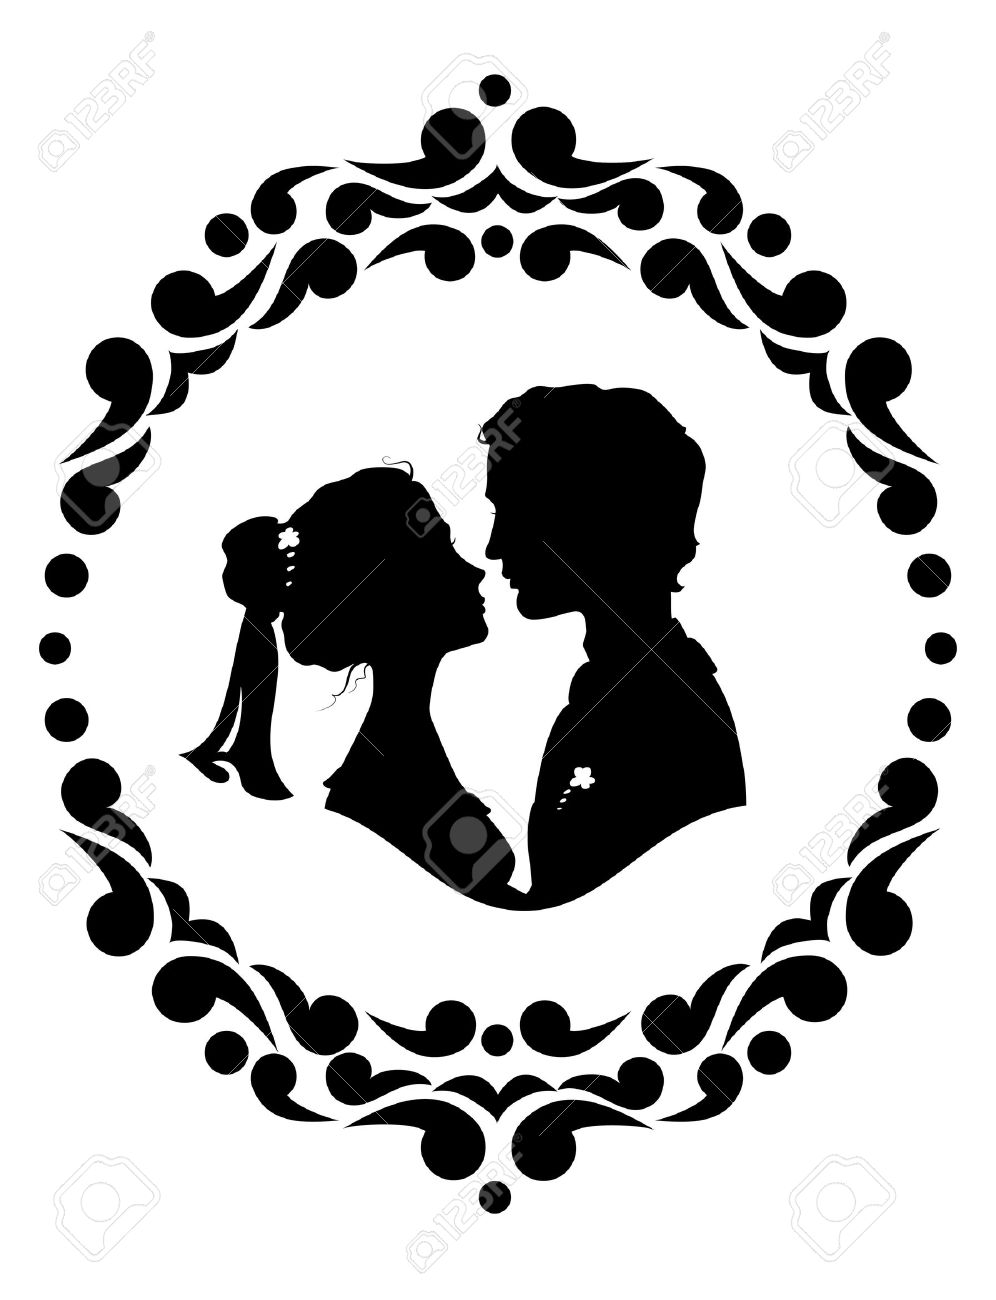 Silhouettes Of Bride And Groom Black Against White Background Stock Vector